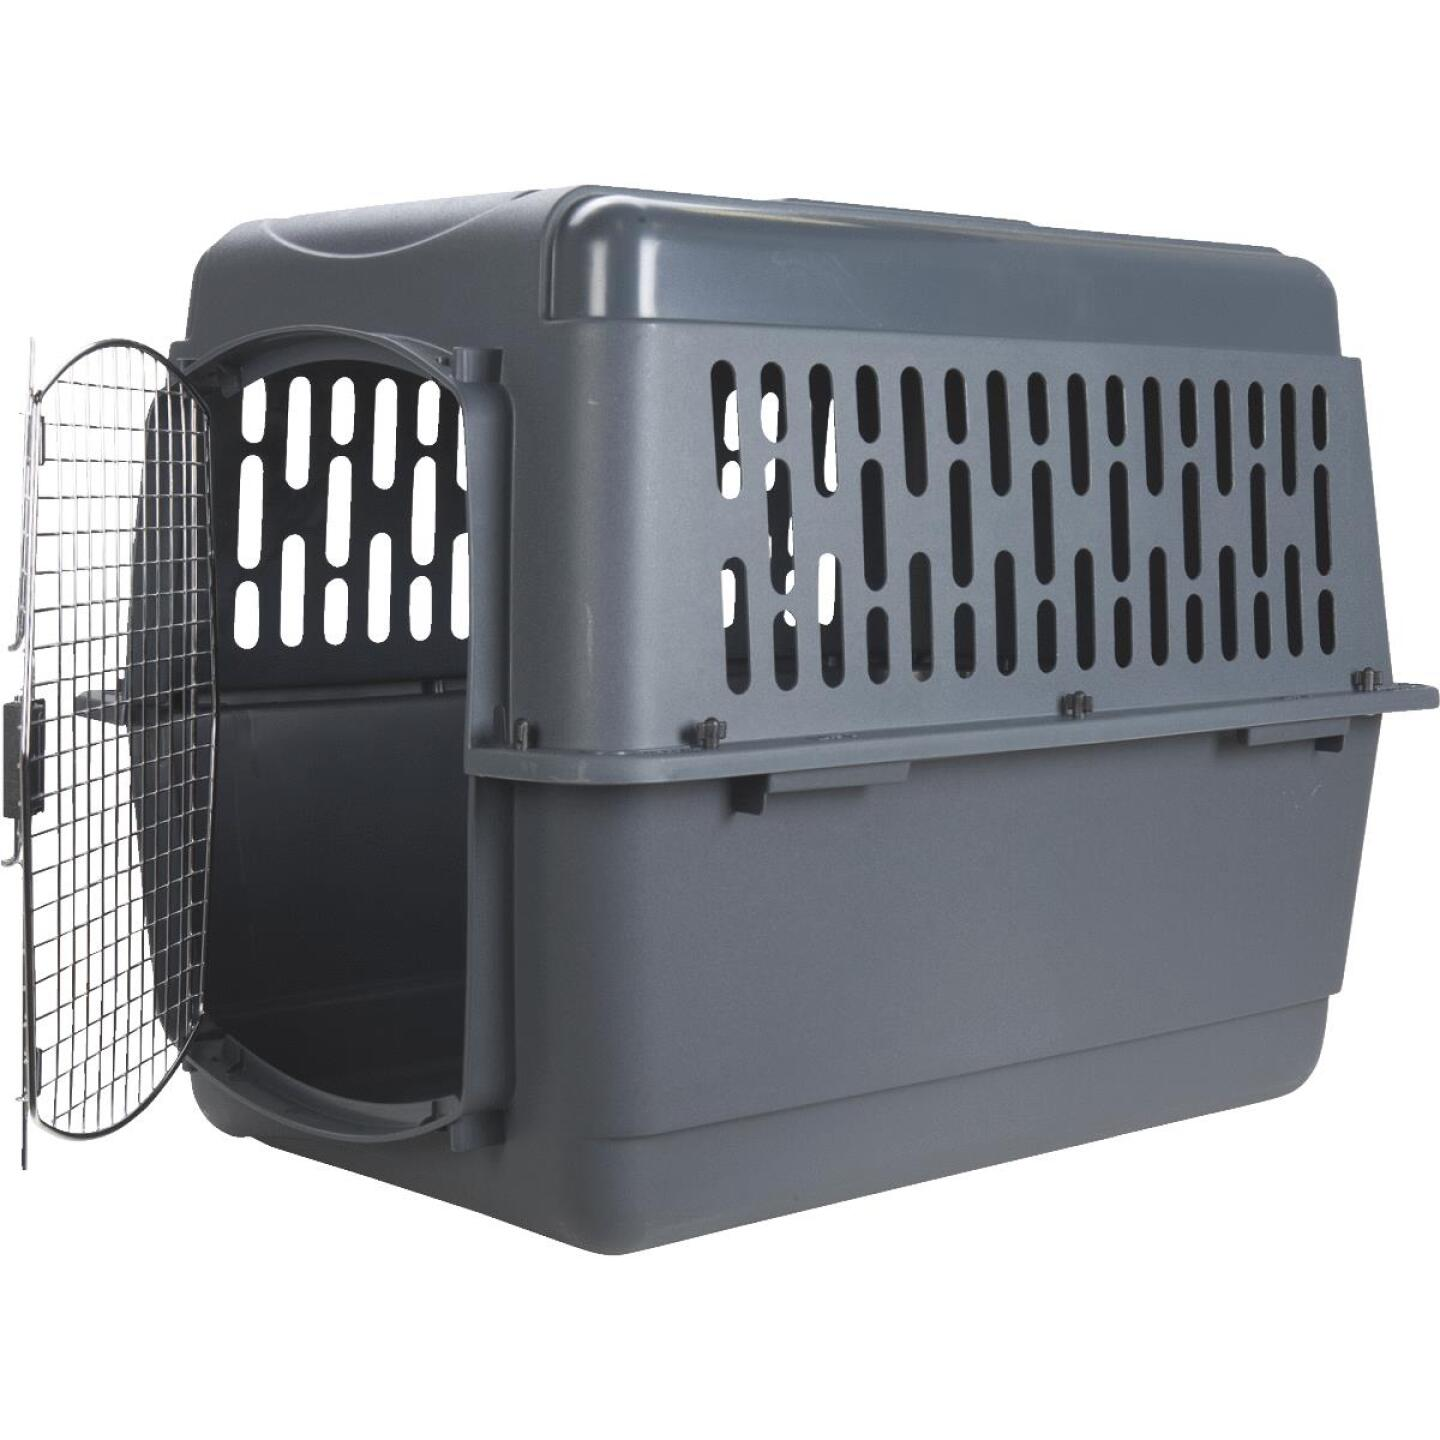 Petmate Aspen Pet 36 In. x 25 In. x 27 In. 50 to 70 Lb. Large Porter Pet Carrier Image 2